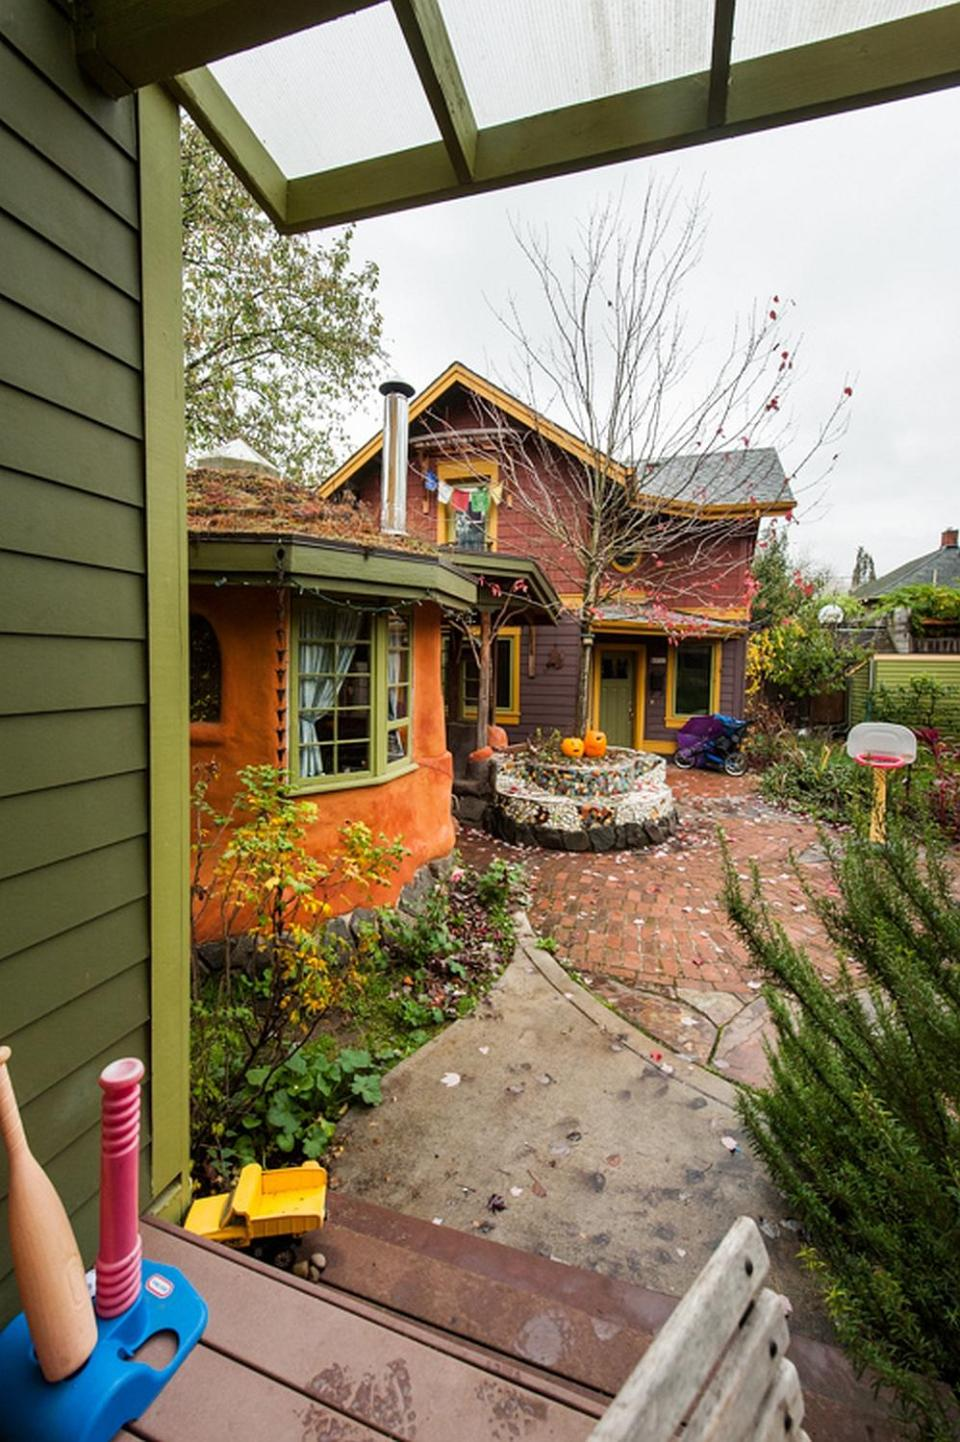 Cohousing living large in small houses small house bliss - Cohousing Living Large In Small Houses Small House Bliss